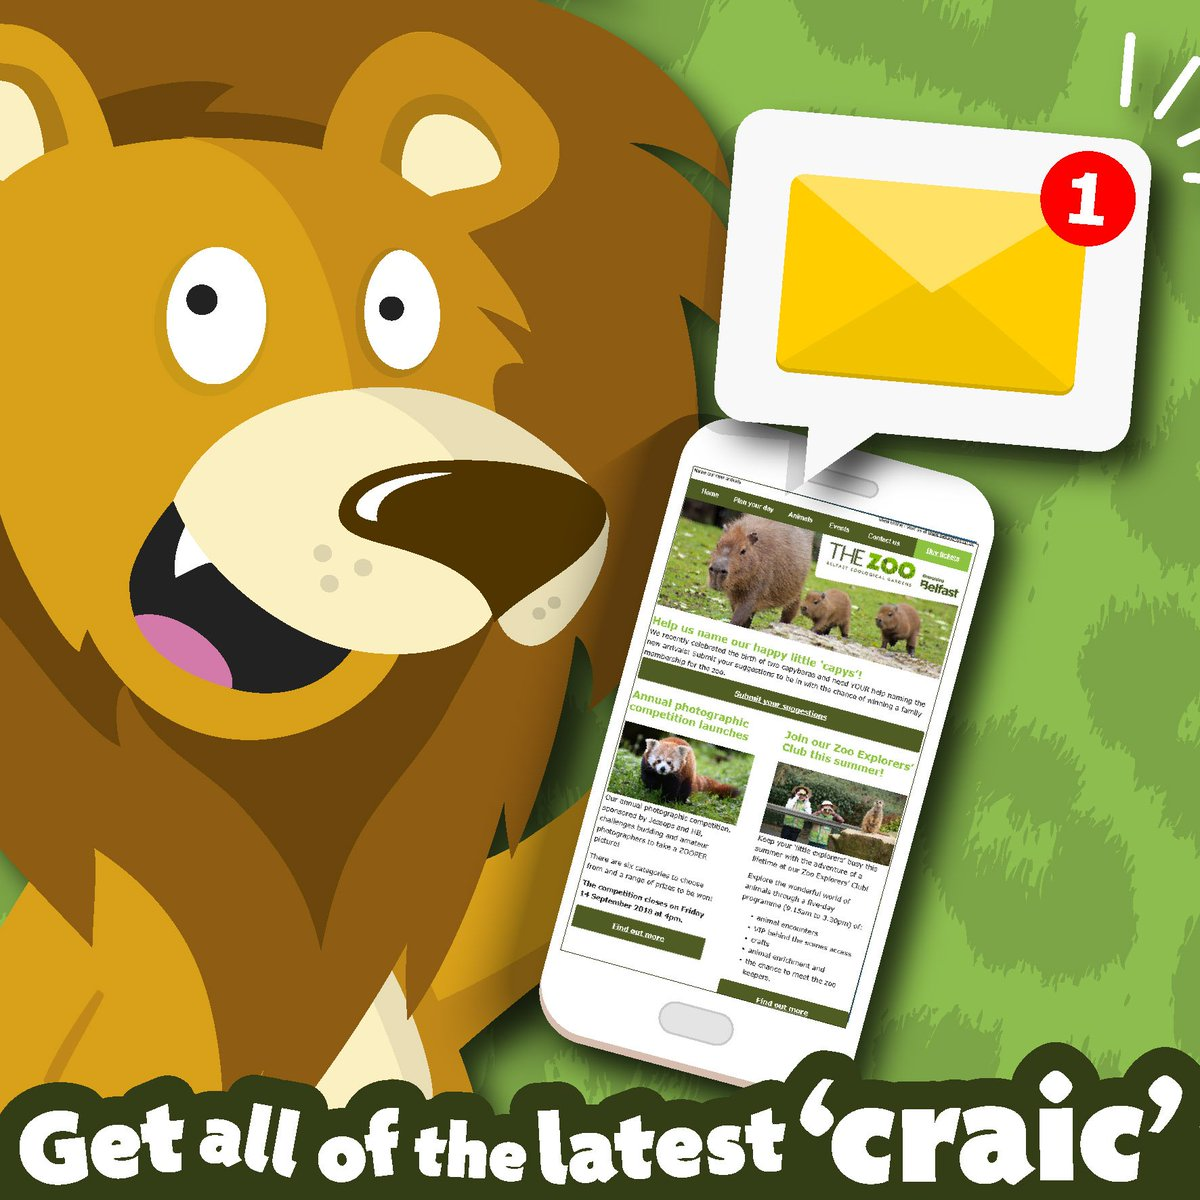 You Will Be Among To First Find Out All Of The Latest Zoo Craic And Keep Up Date With Your Favourite Animalvisit Owly 2fqX30llDSX